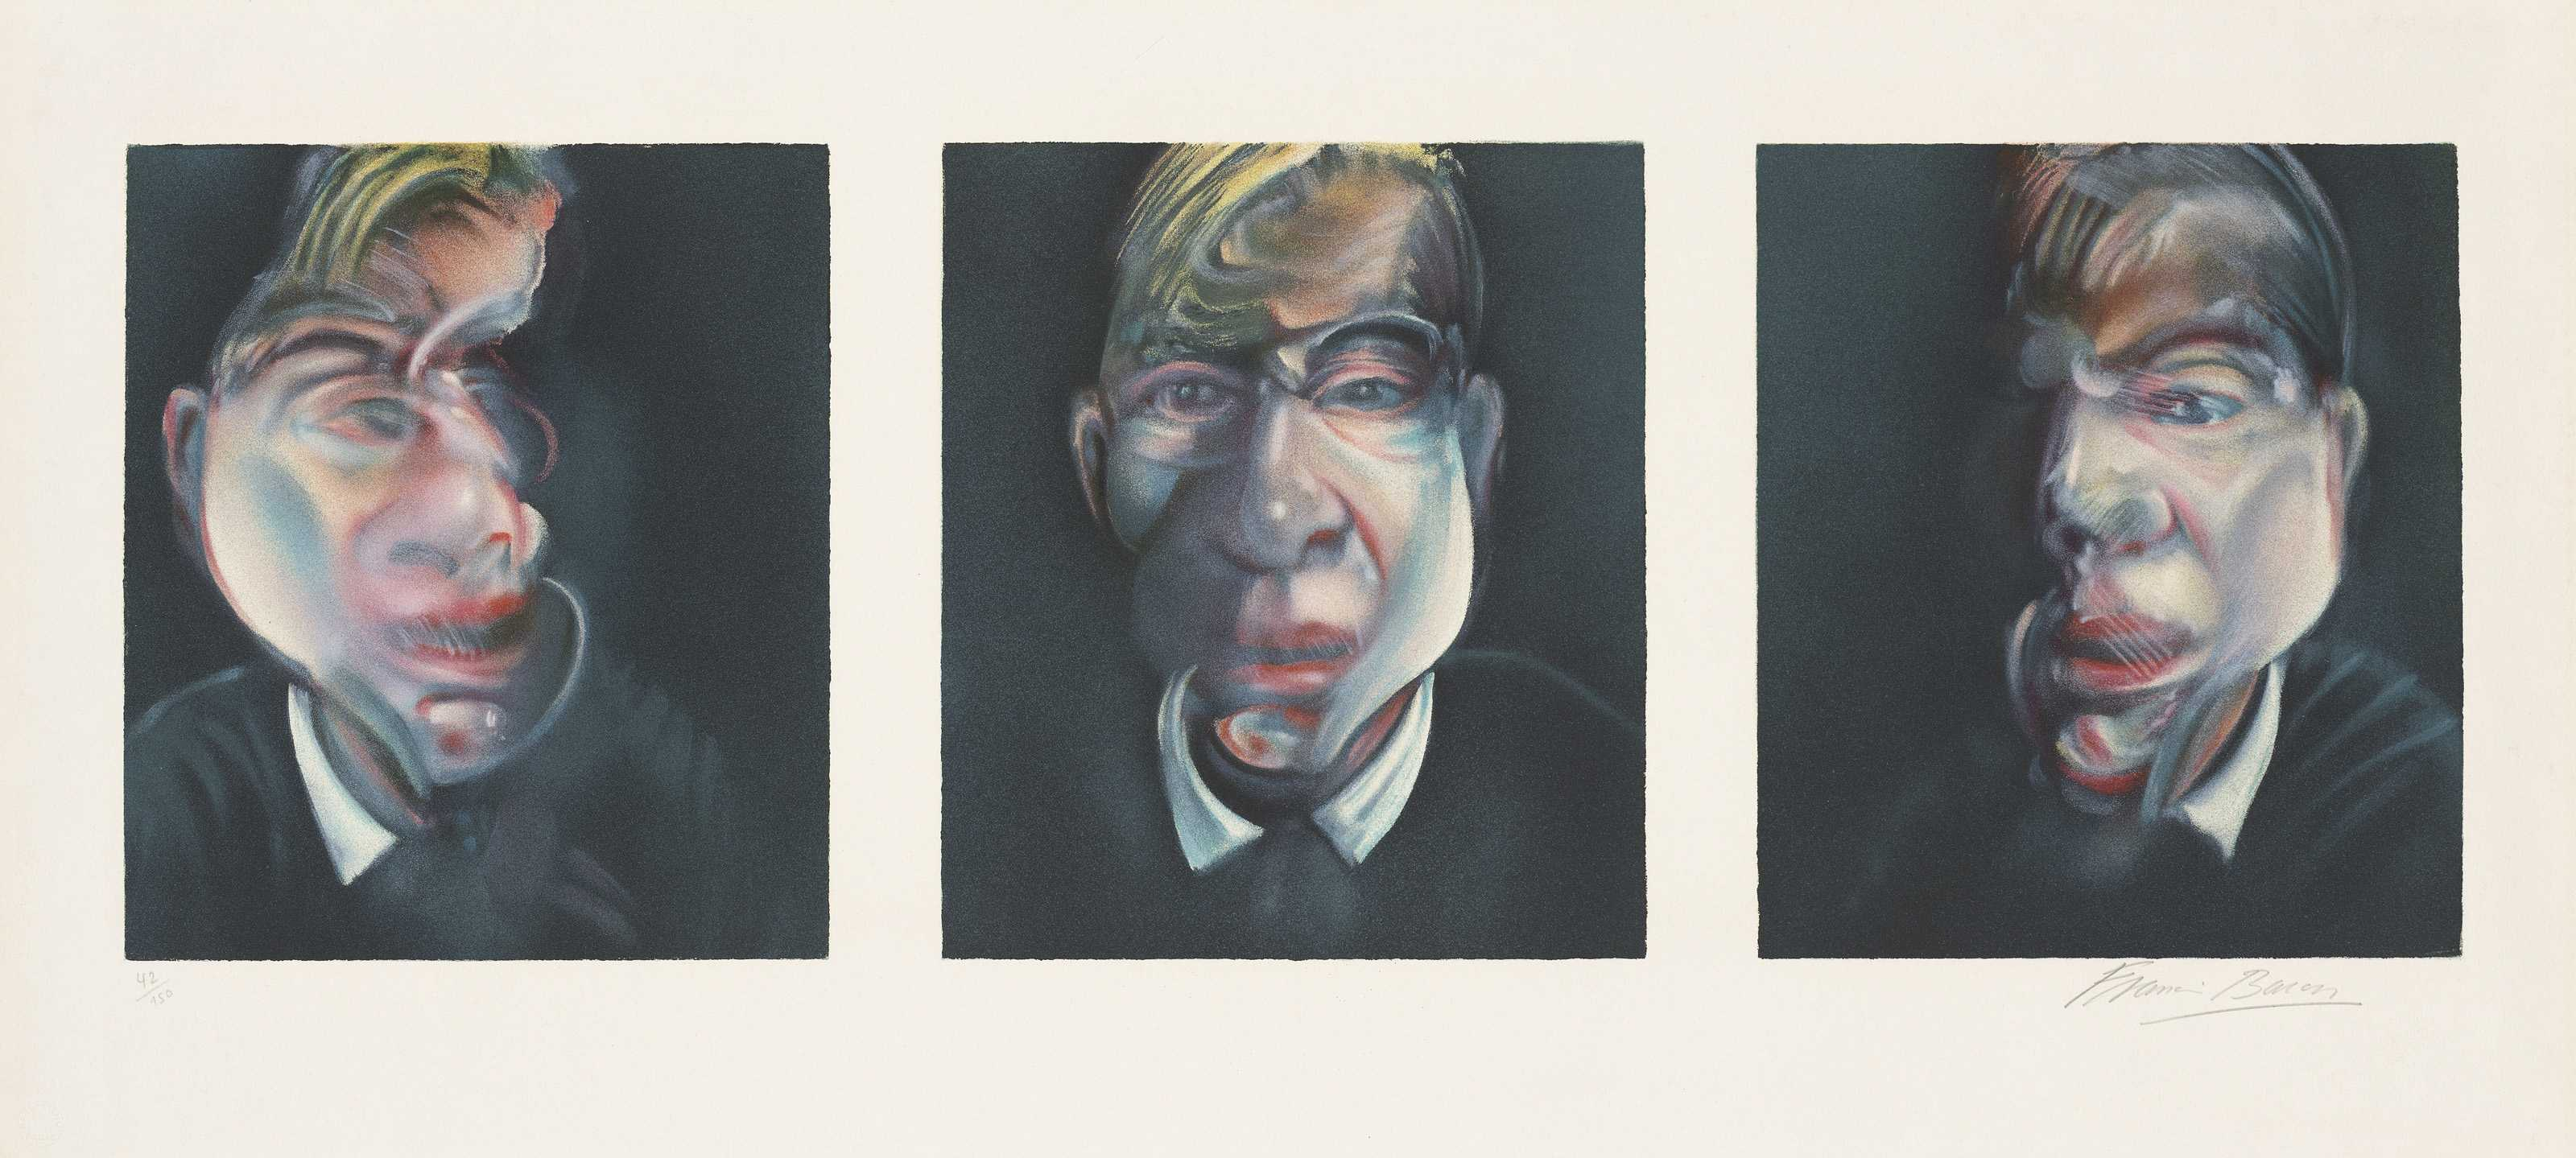 Francis Bacon, Three Studies for a Self-Portrait, 1981